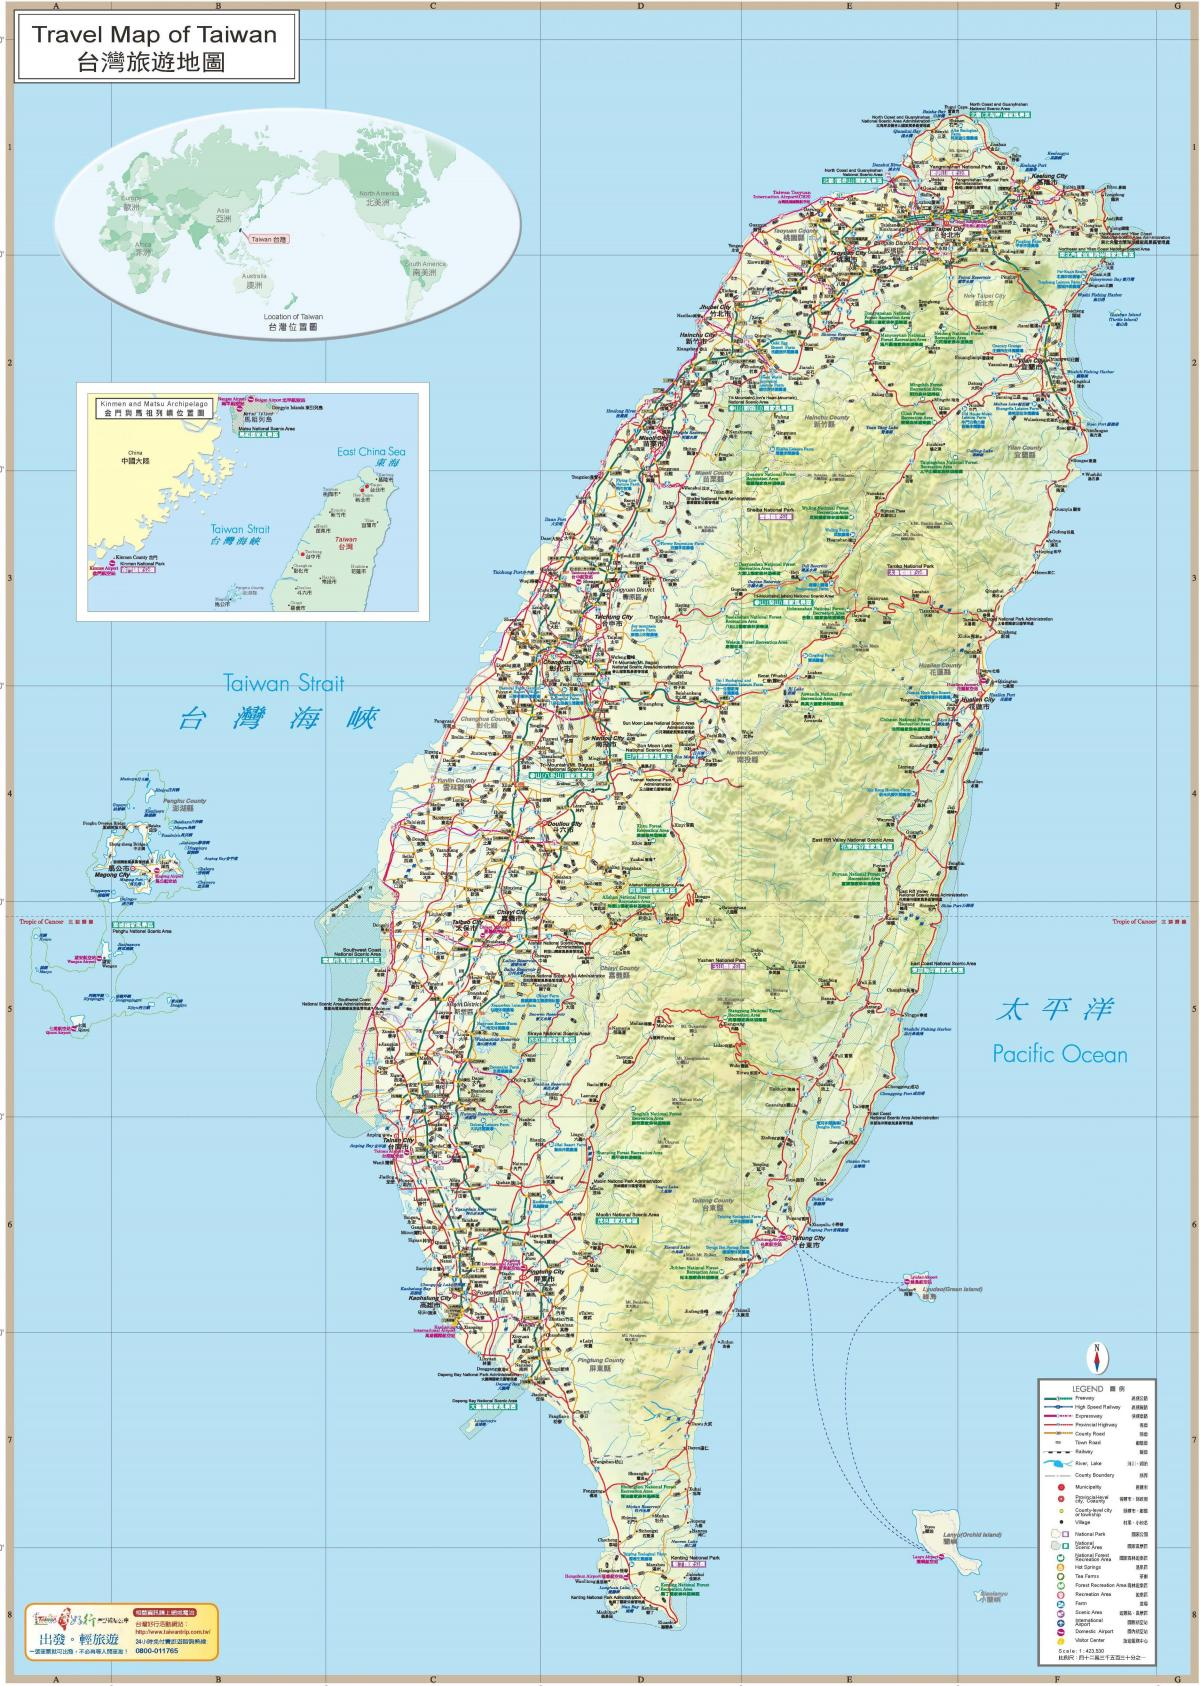 Taiwan travel guide map